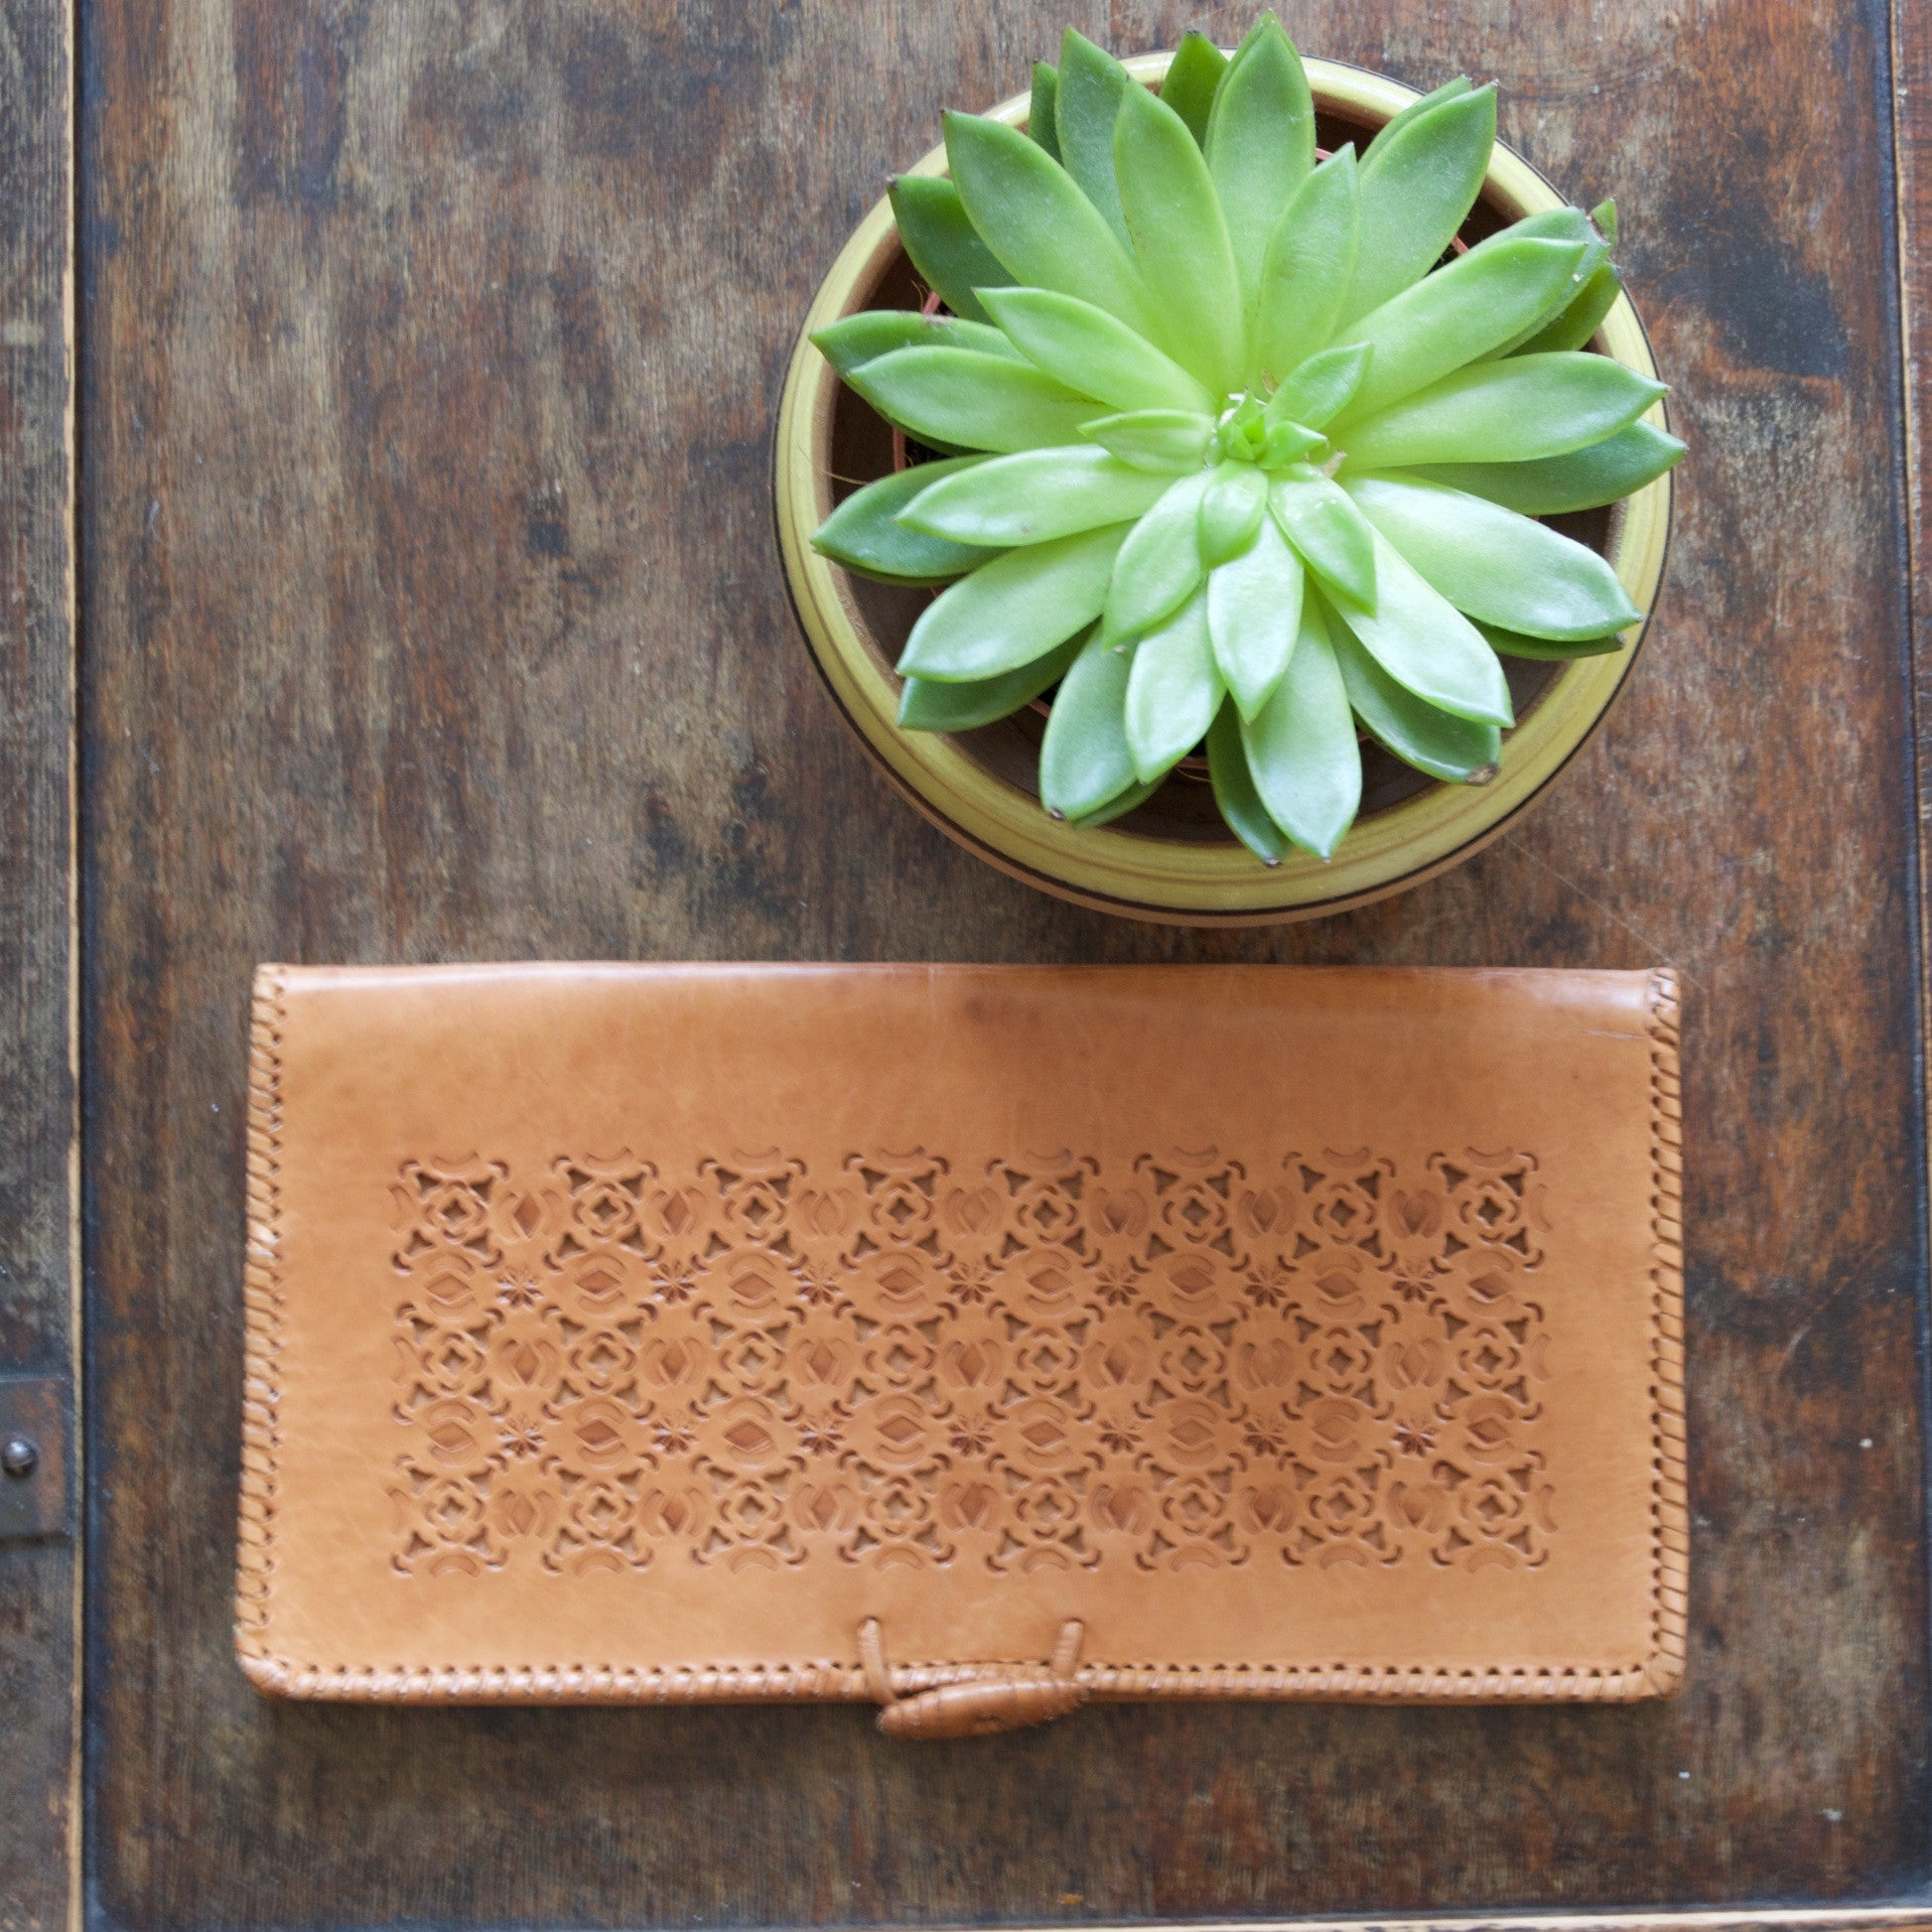 Tan leather casual vintage clutch bag